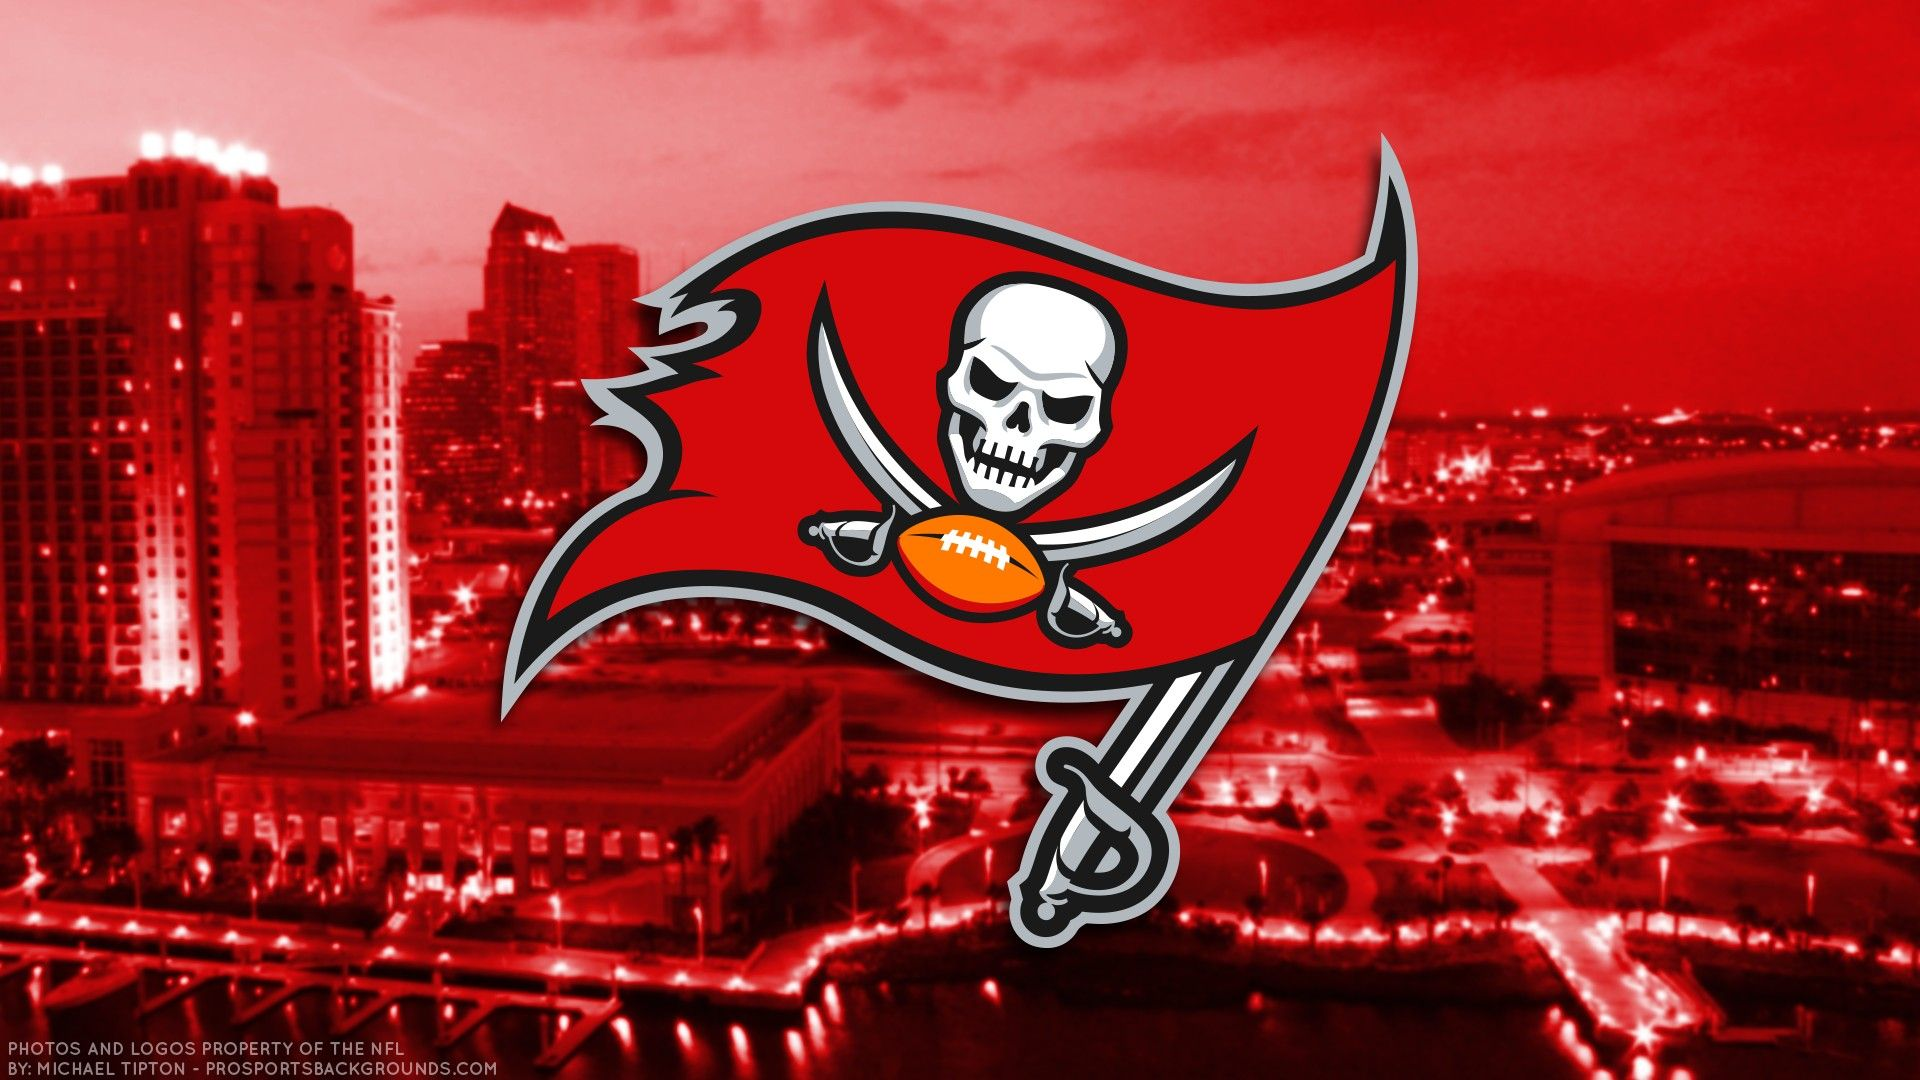 Tampa Bay Buccaneers Wallpapers Top Free Tampa Bay Buccaneers Backgrounds Wallpaperaccess